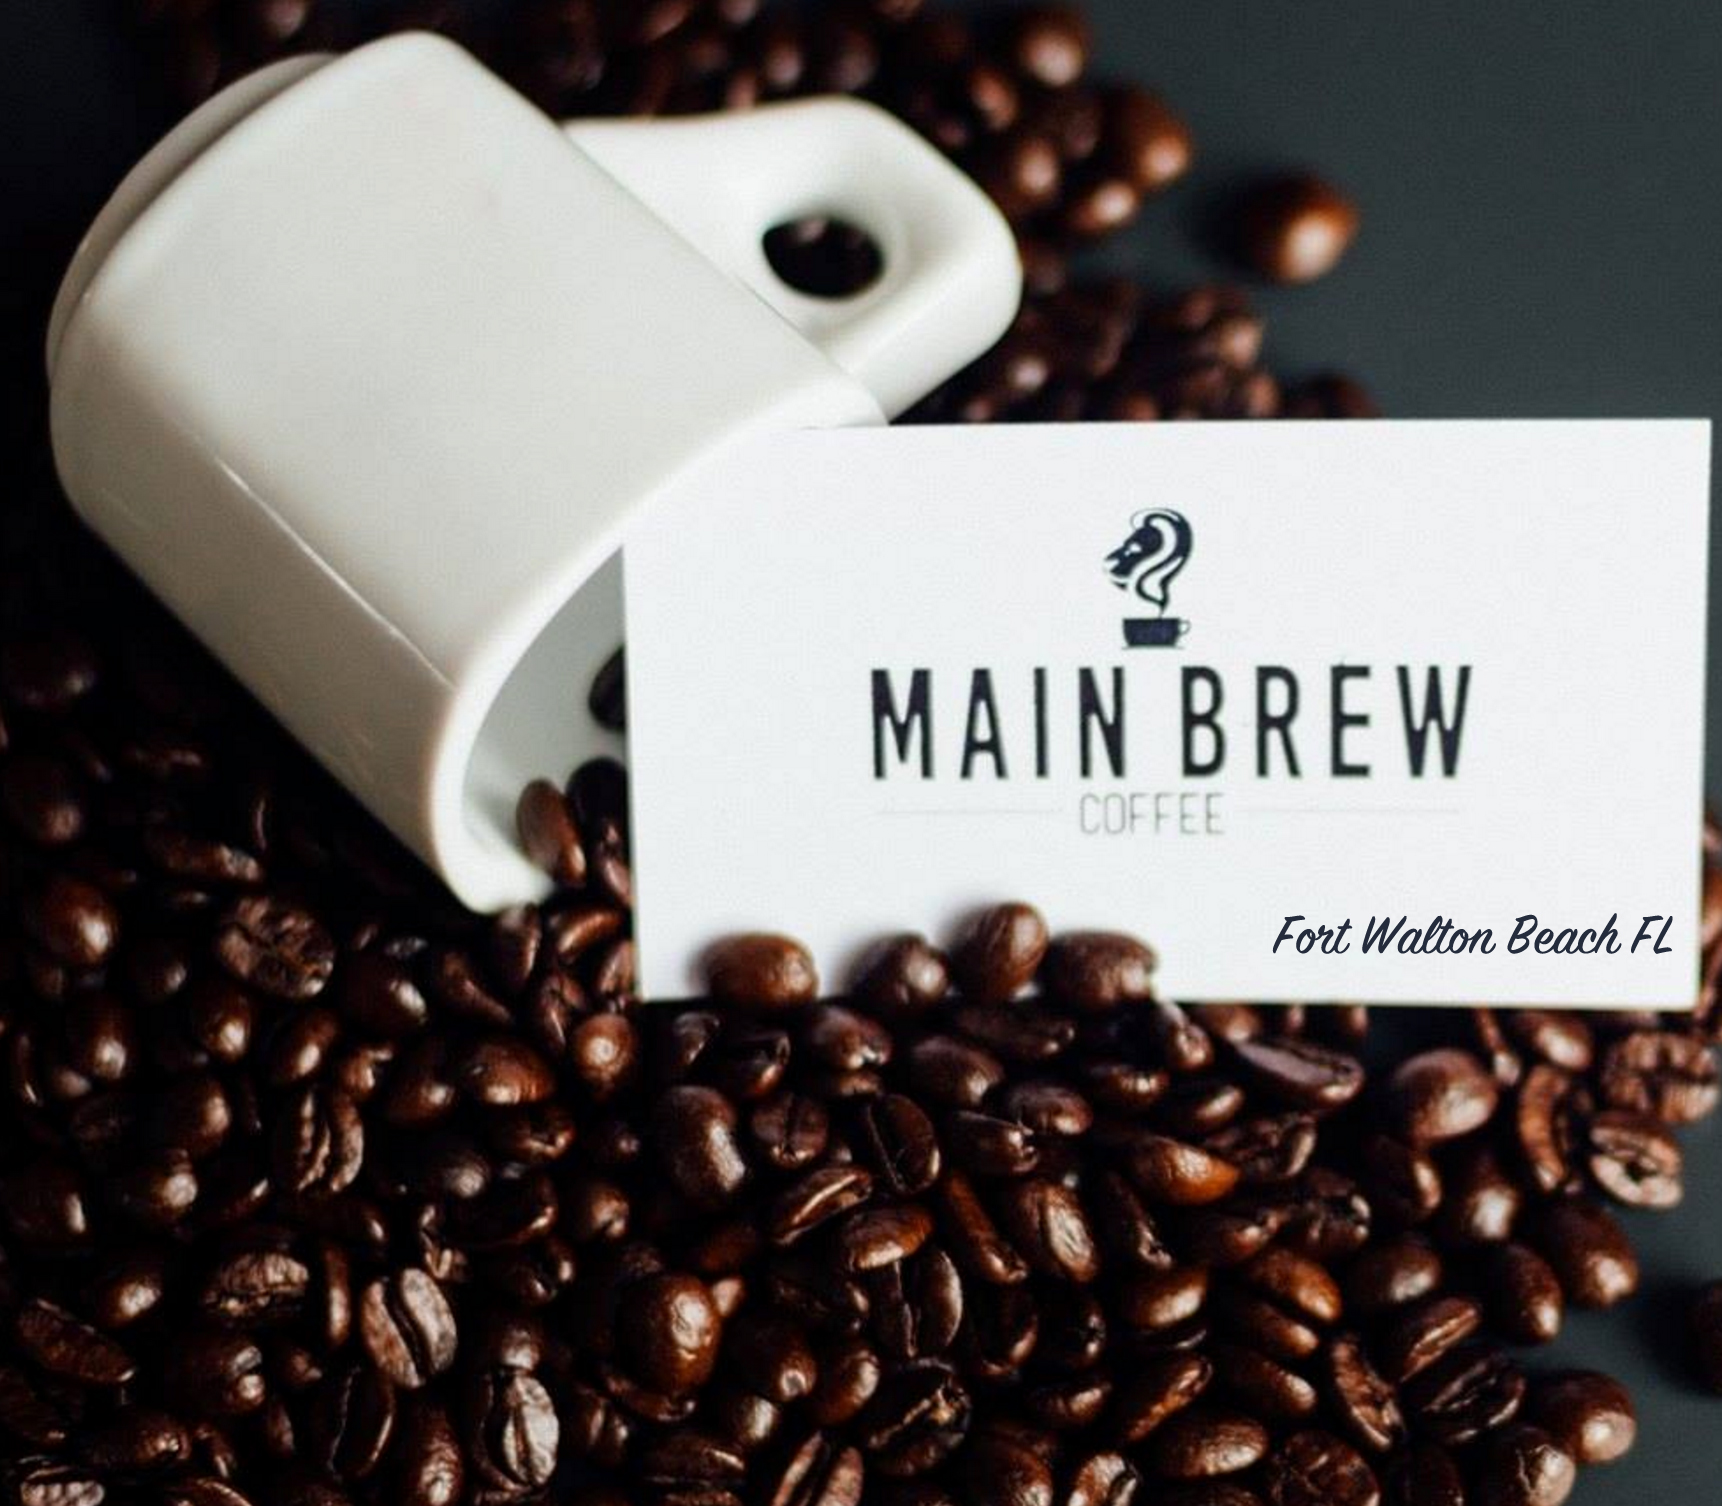 Main Brew Coffee